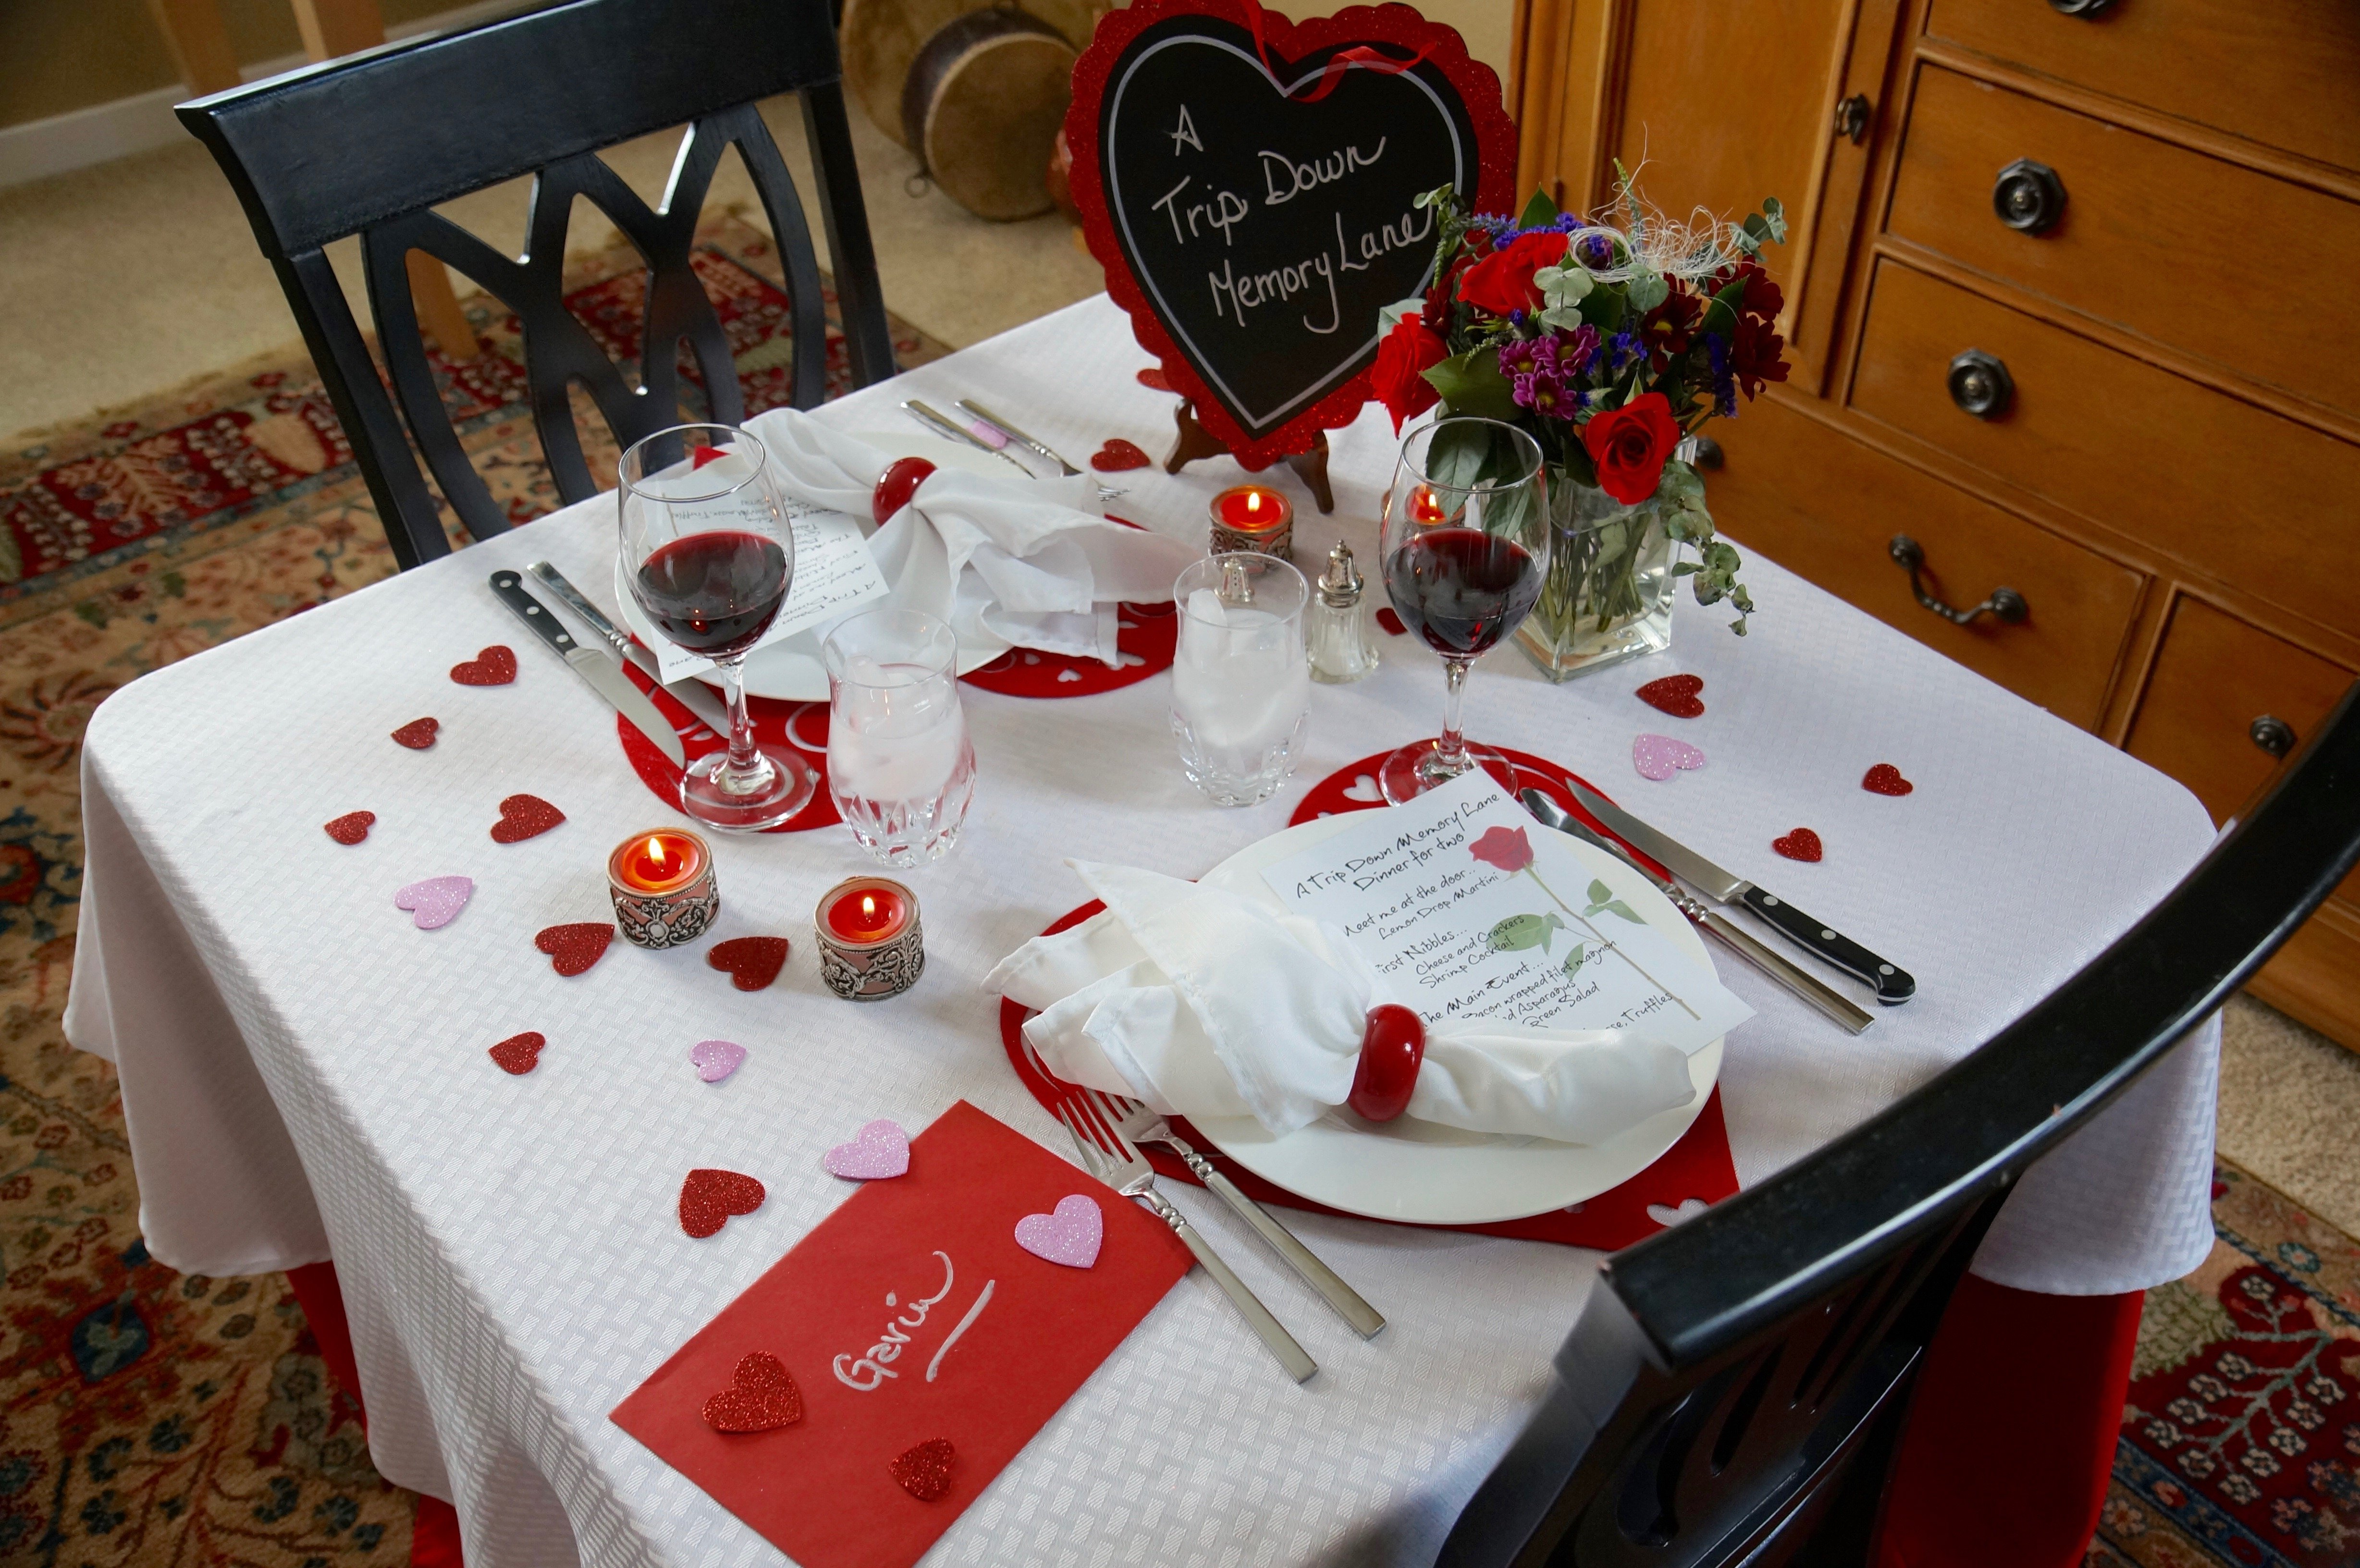 10 Stylish Ideas For A Romantic Night extremely romantic night ideas at home 25 unique indoor picnic